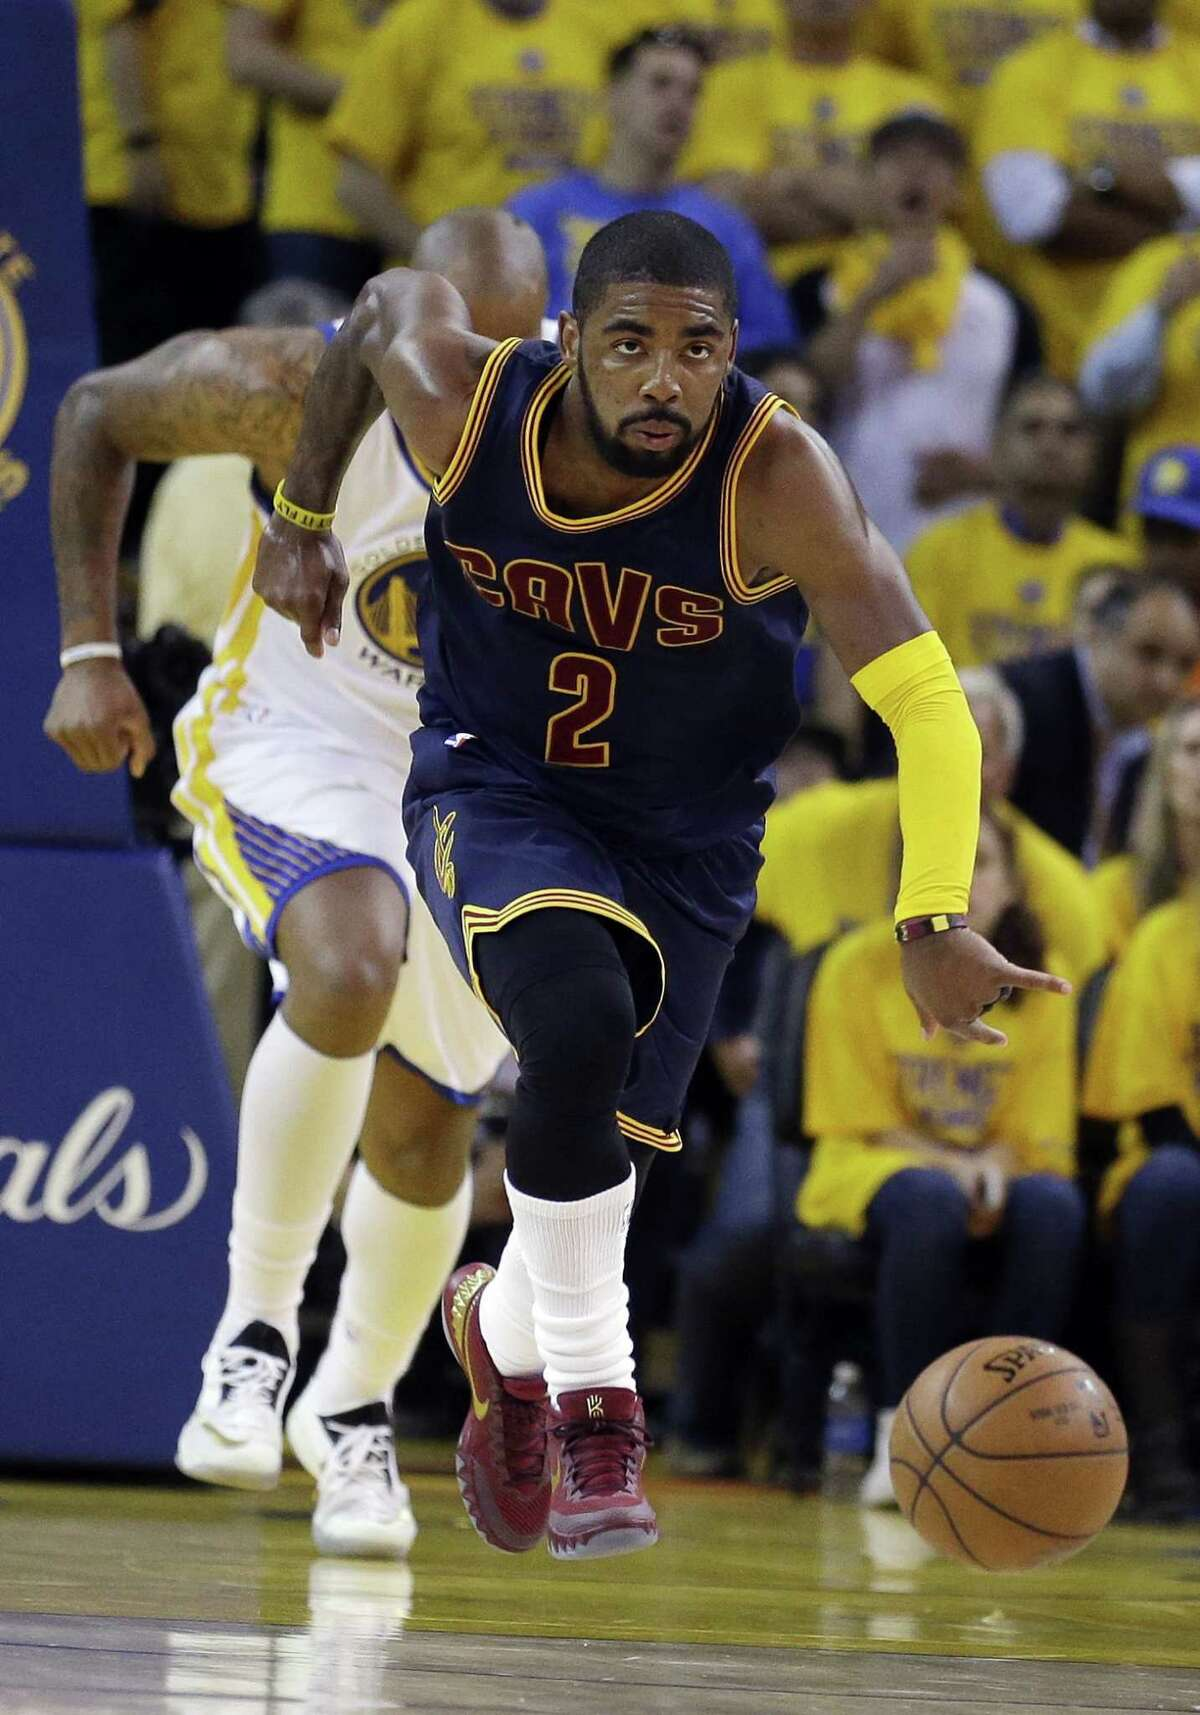 Cleveland Cavaliers guard Kyrie Irving dribbles up the floor against the Golden State Warriors during Game 1 of the NBA Finals on Thursday night in Oakland, Calif.